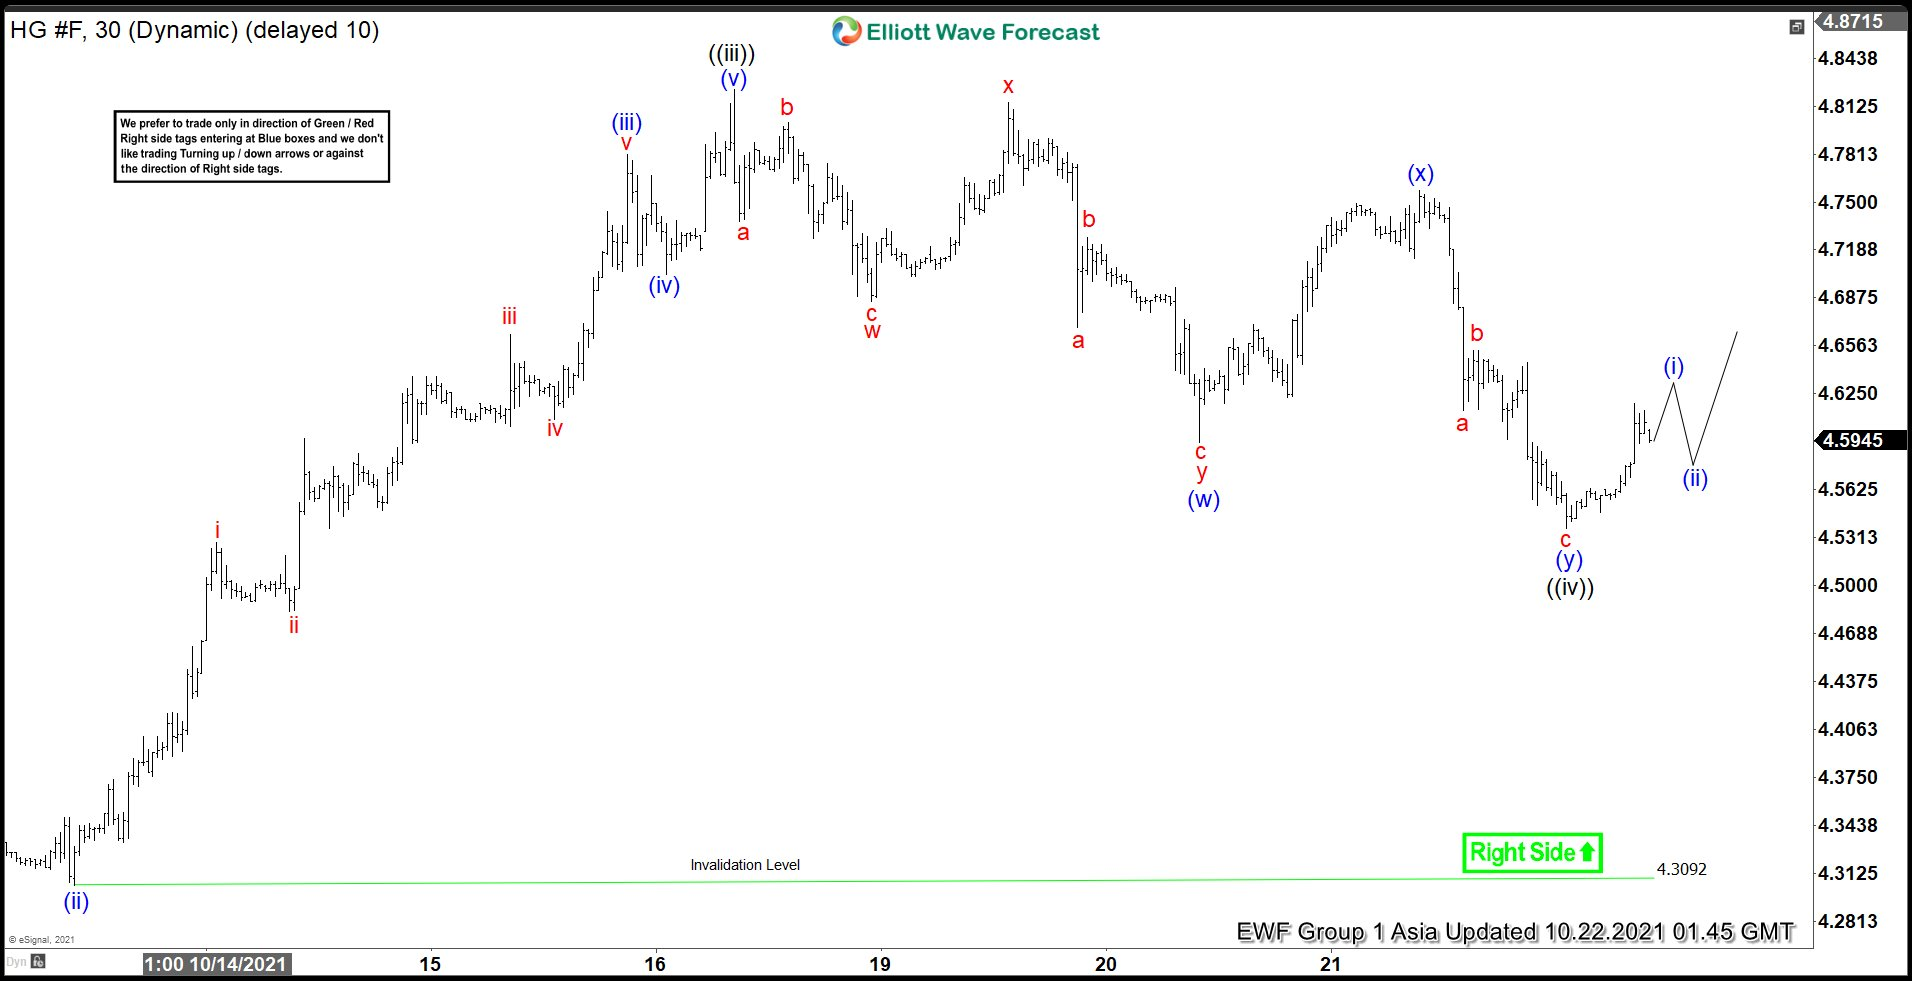 Elliott Wave View: Copper (HG) Looks to Extend Higher